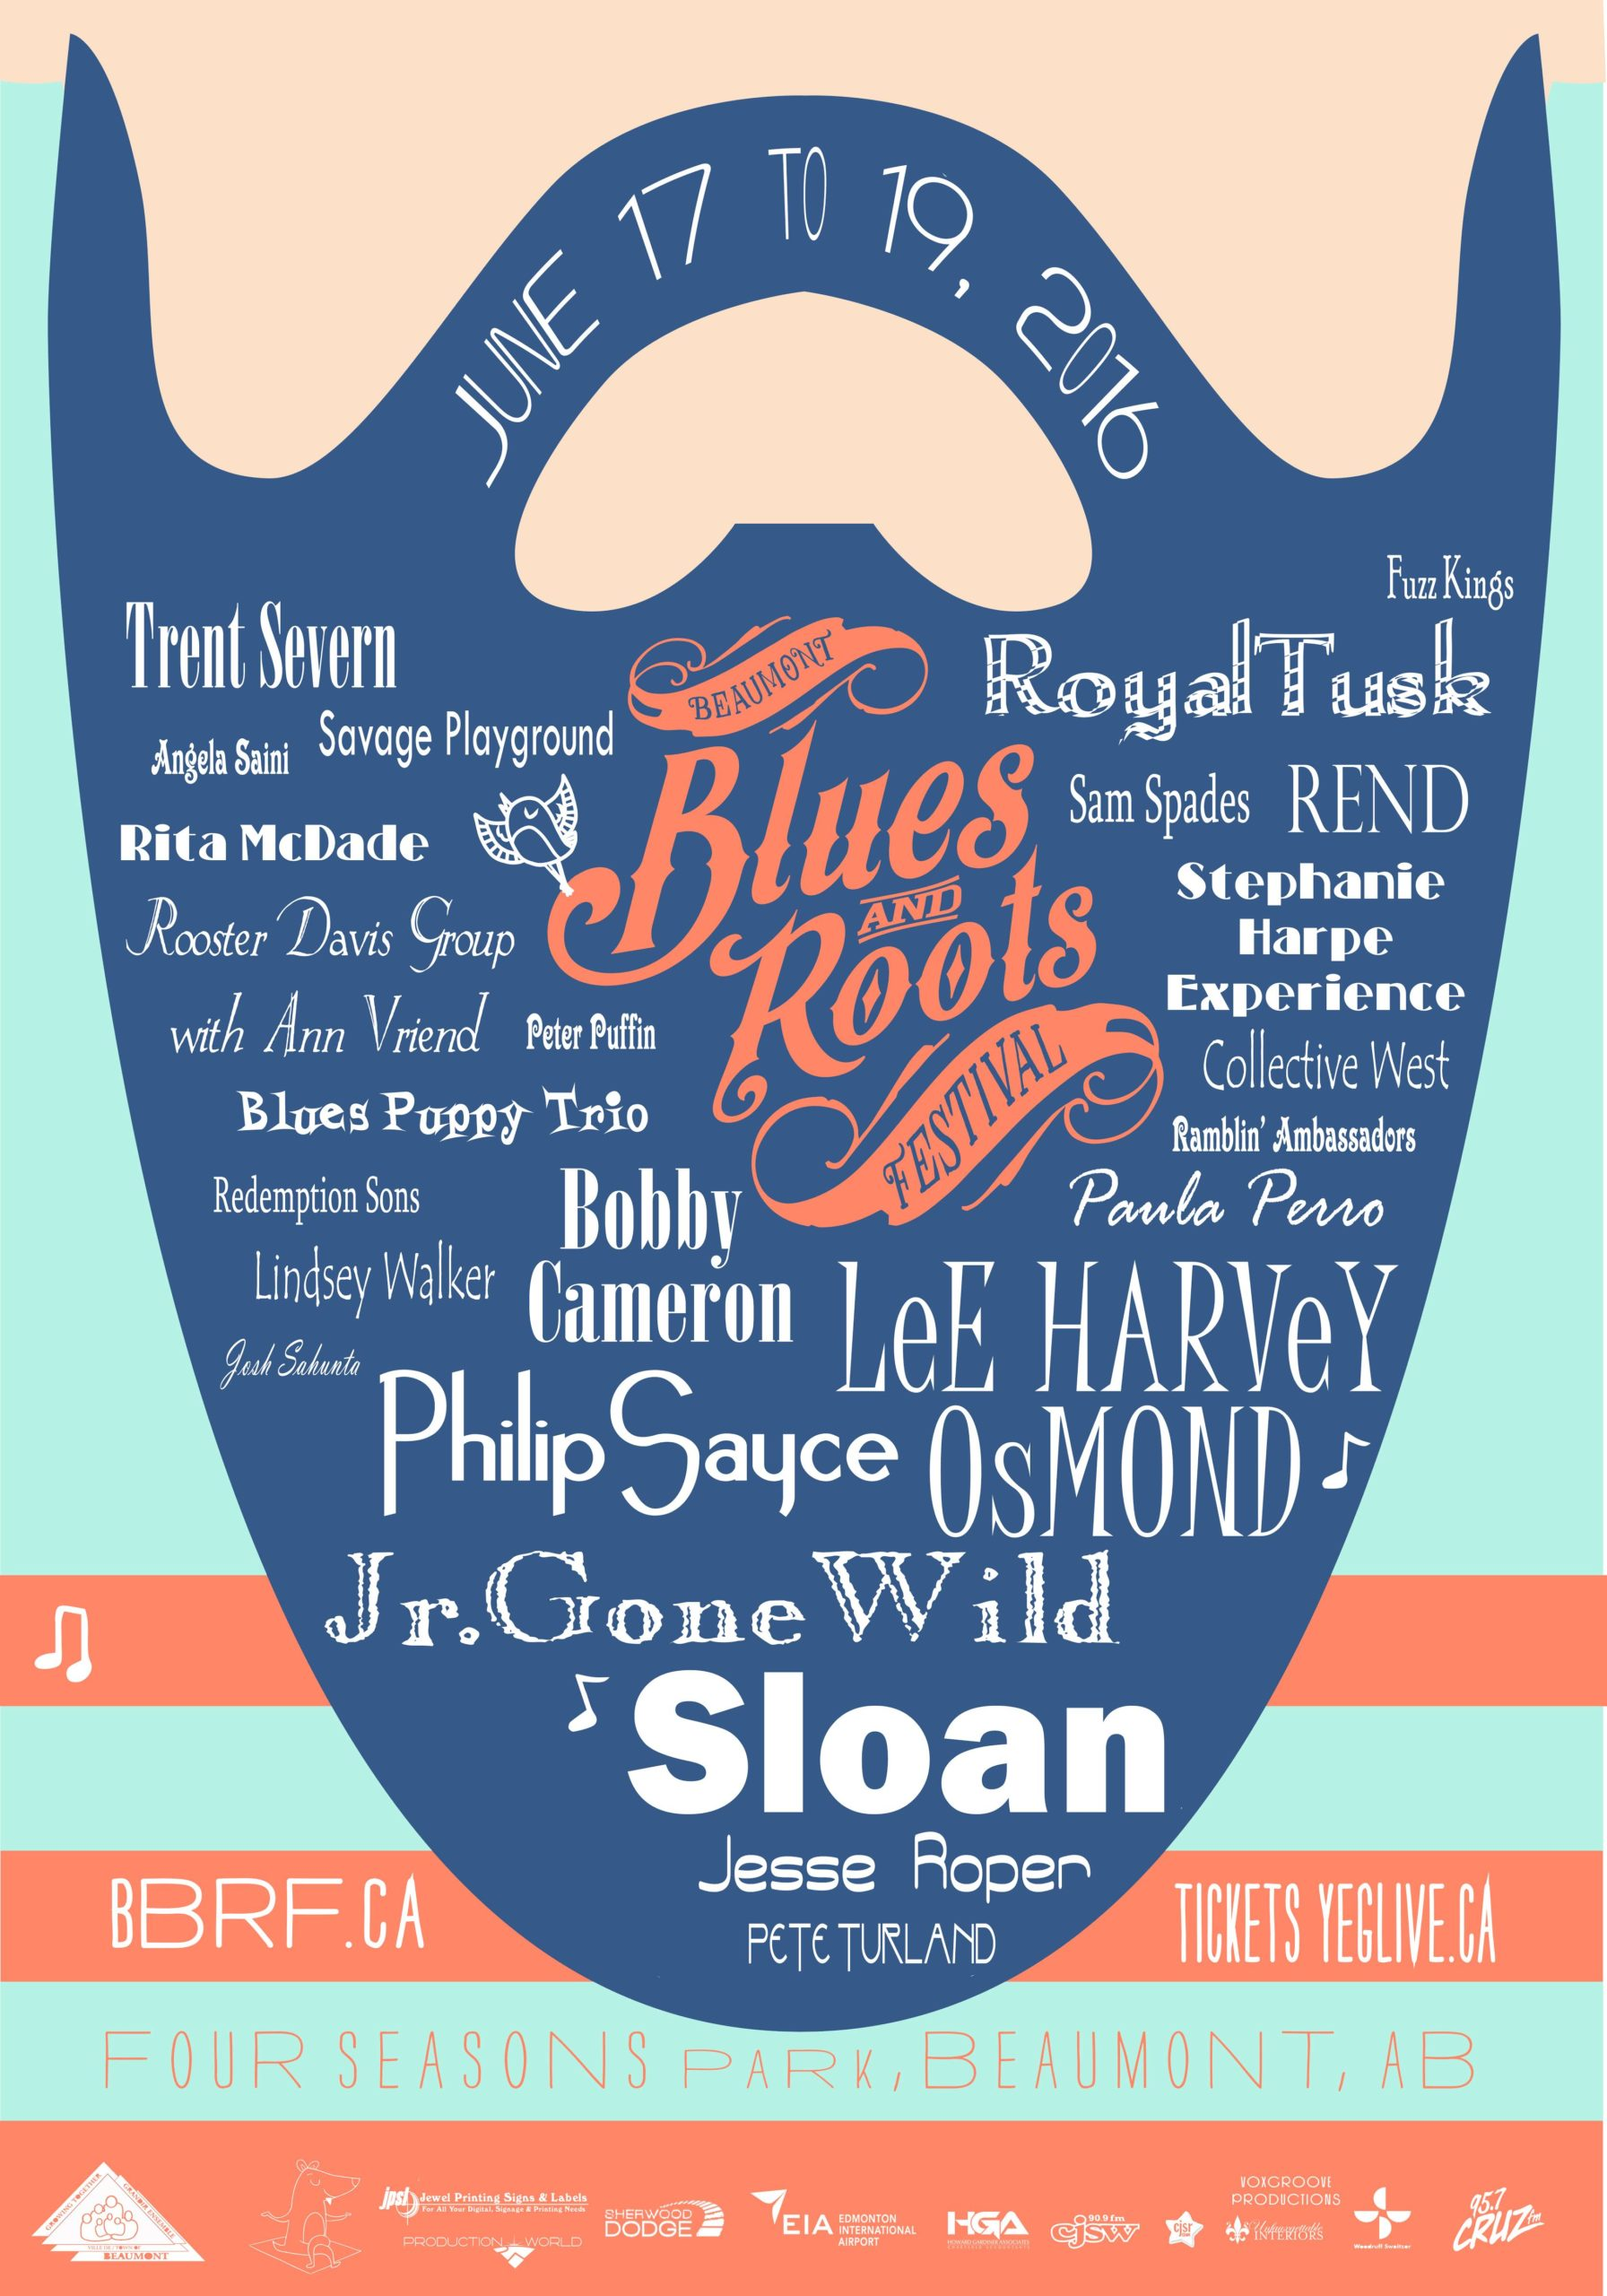 The Beaumont Blues & Roots Festival poster 2016 beard